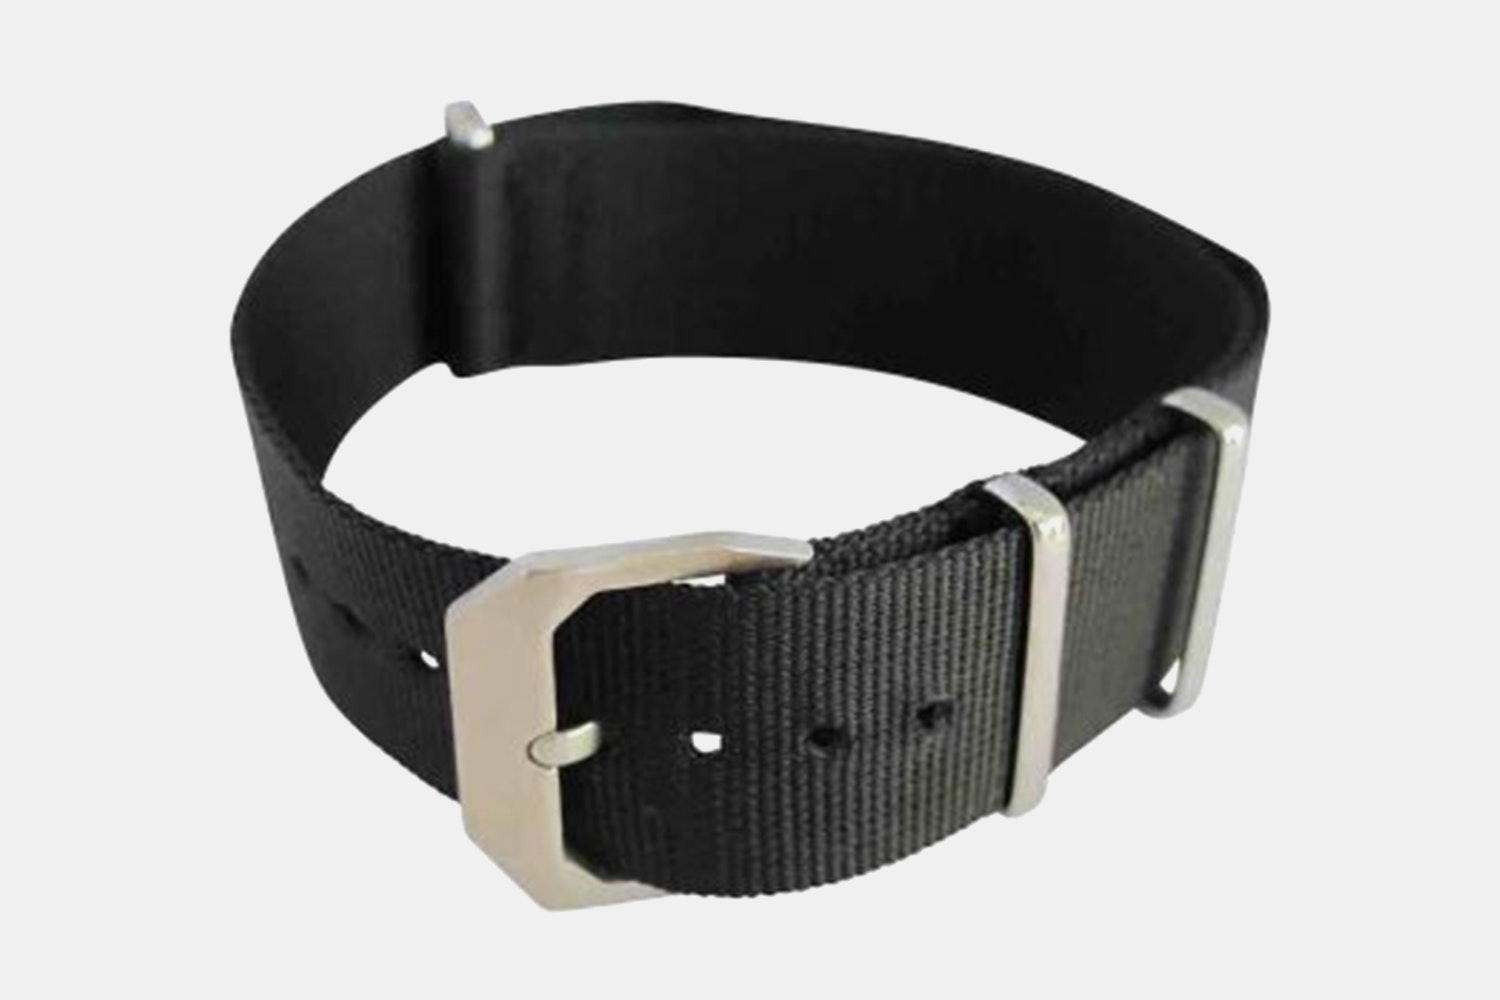 Black Nylon Strap, Silver Buckle